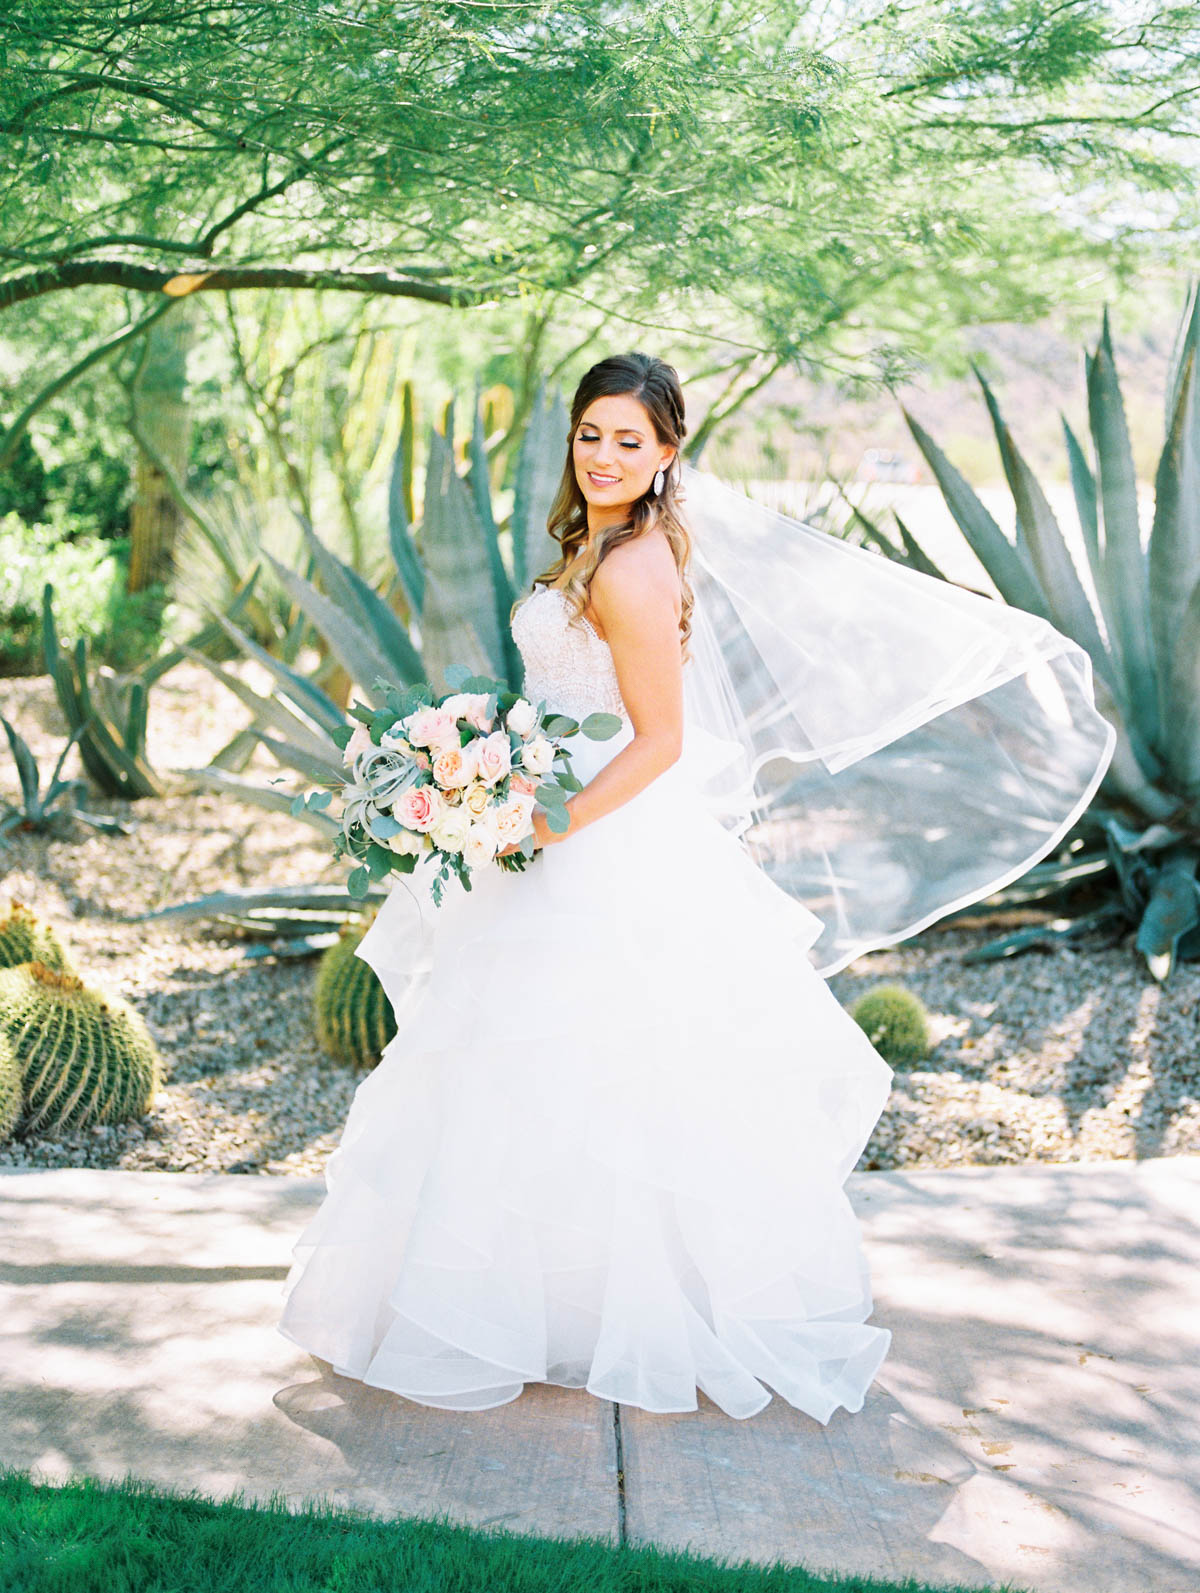 Gorgeous bride with hair and makeup by Heather Van Houten Mike & Jamie's gorgeous day captured by Tucson Wedding Photographers Betsy & John